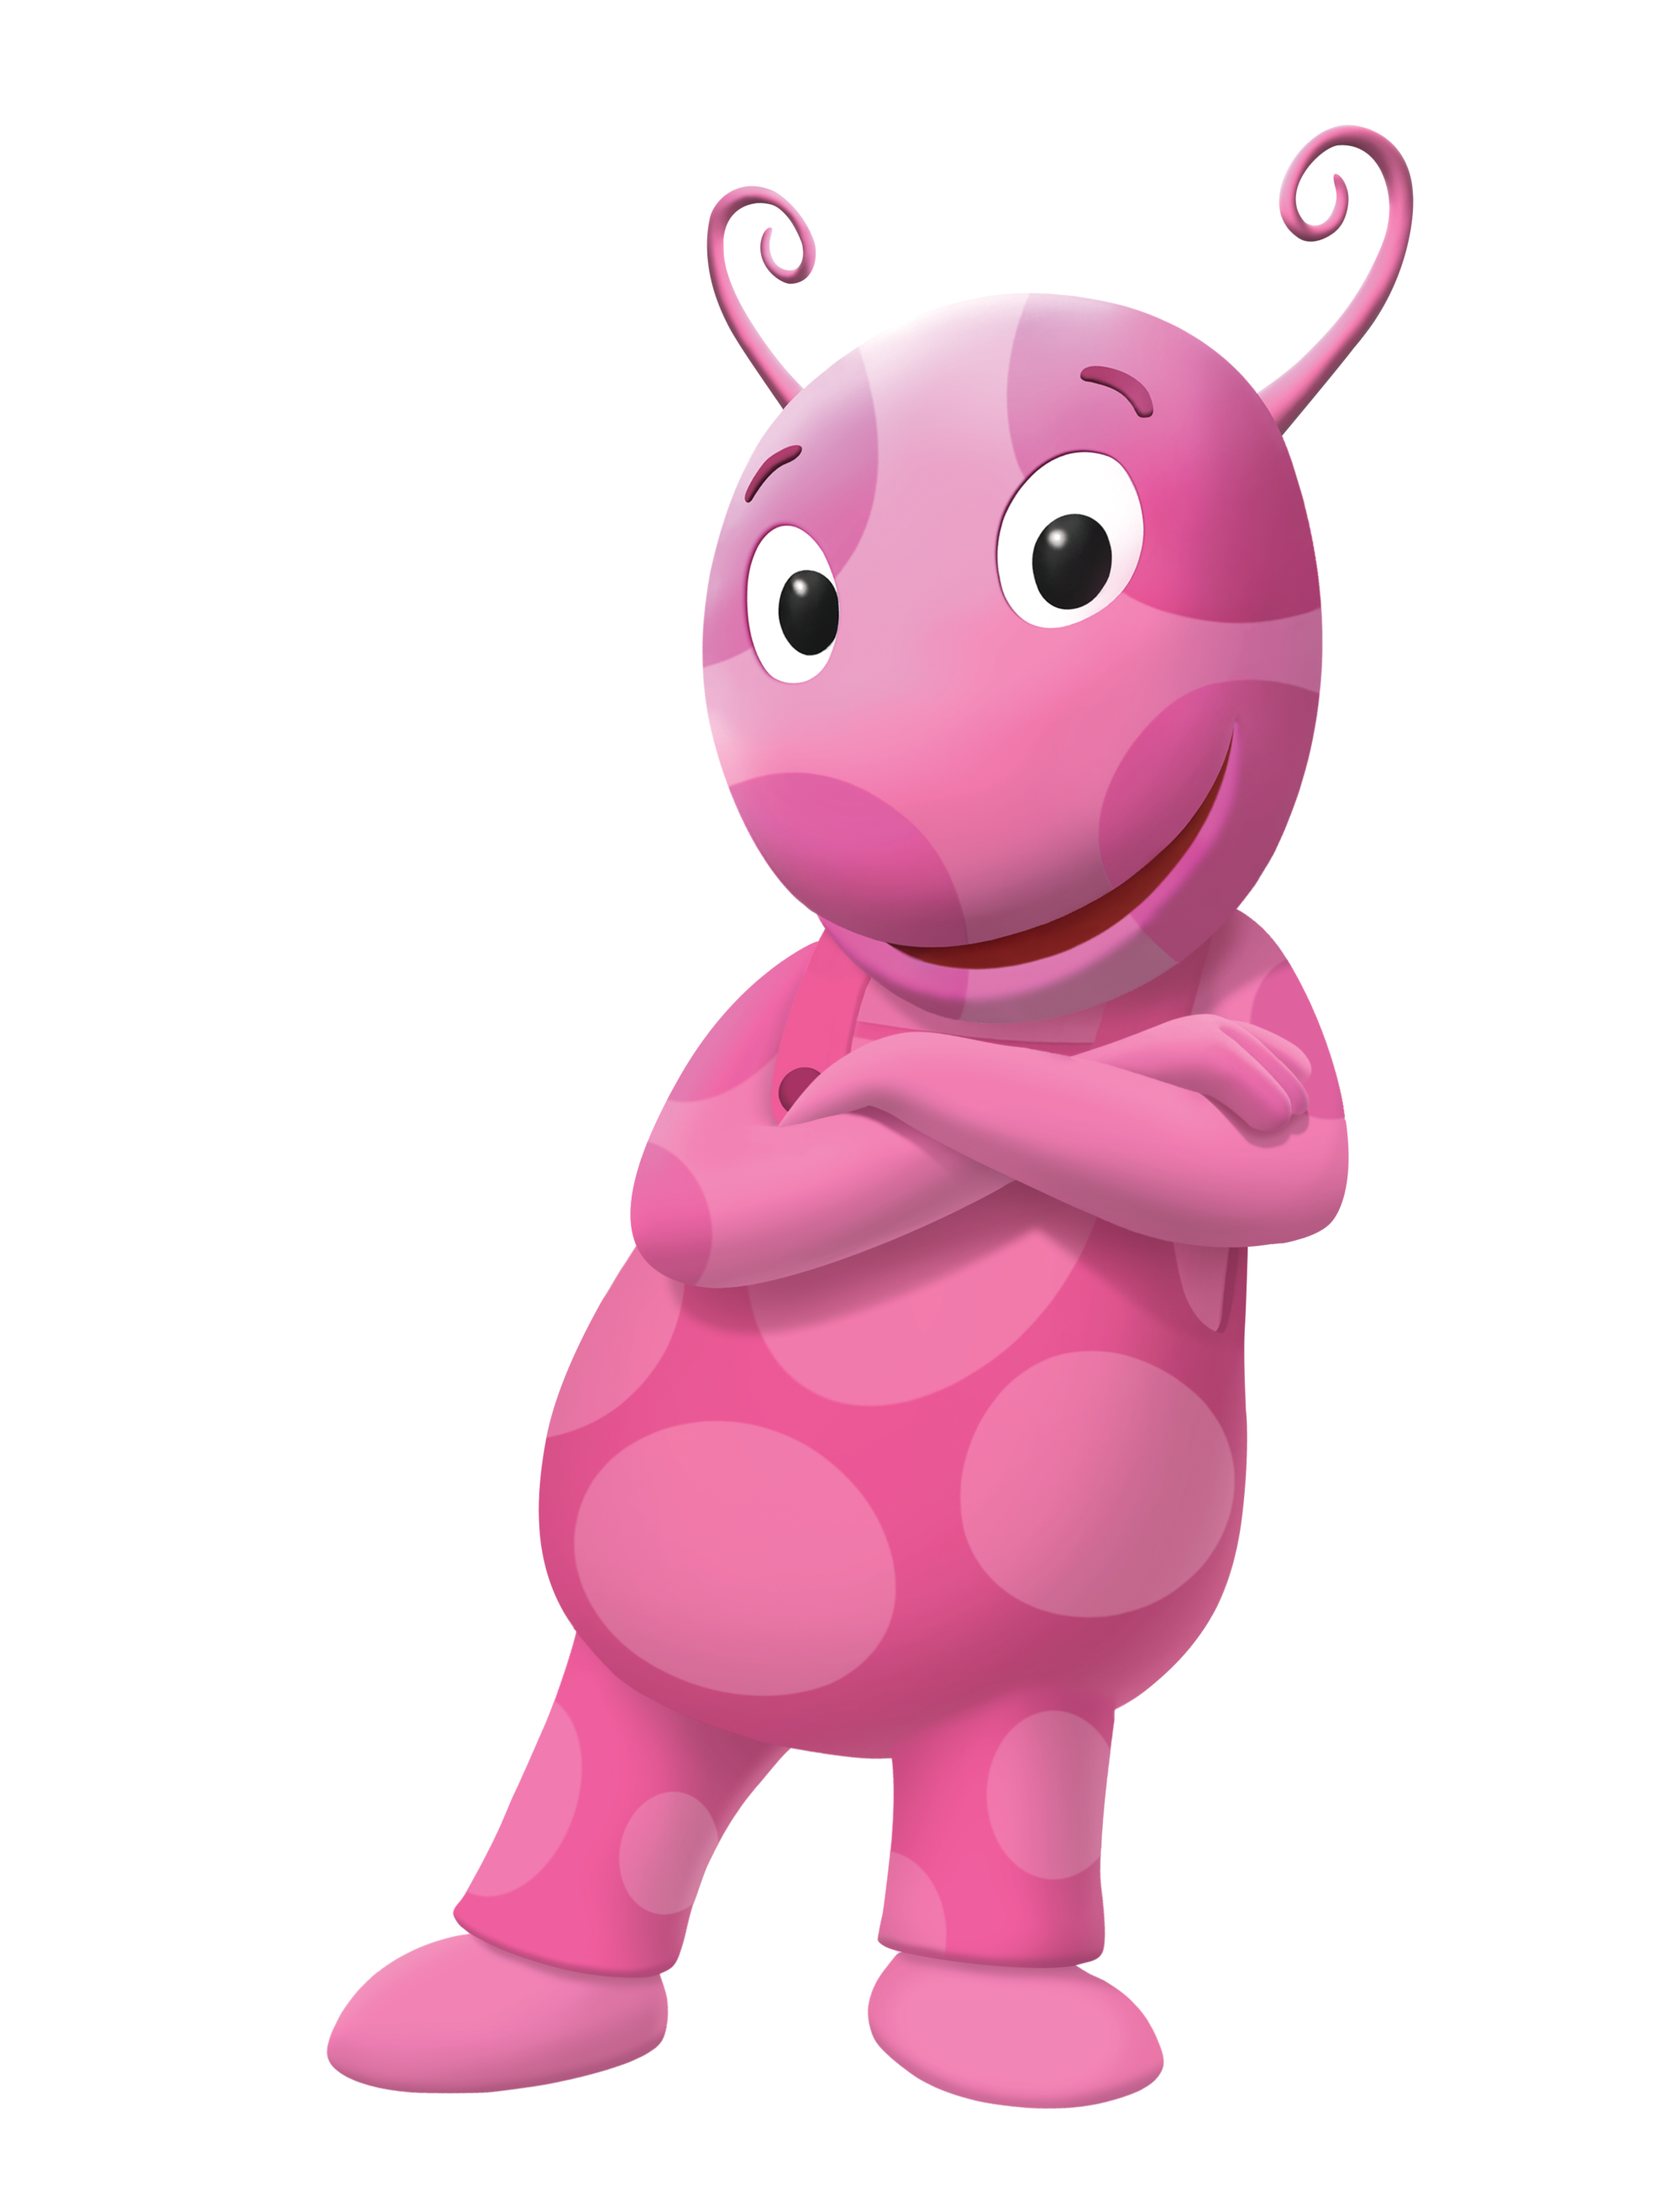 Uncategorized Pink Backyardigan image the backyardigans uniqua cross armed nickelodeon nick jr character png wiki fandom powered by